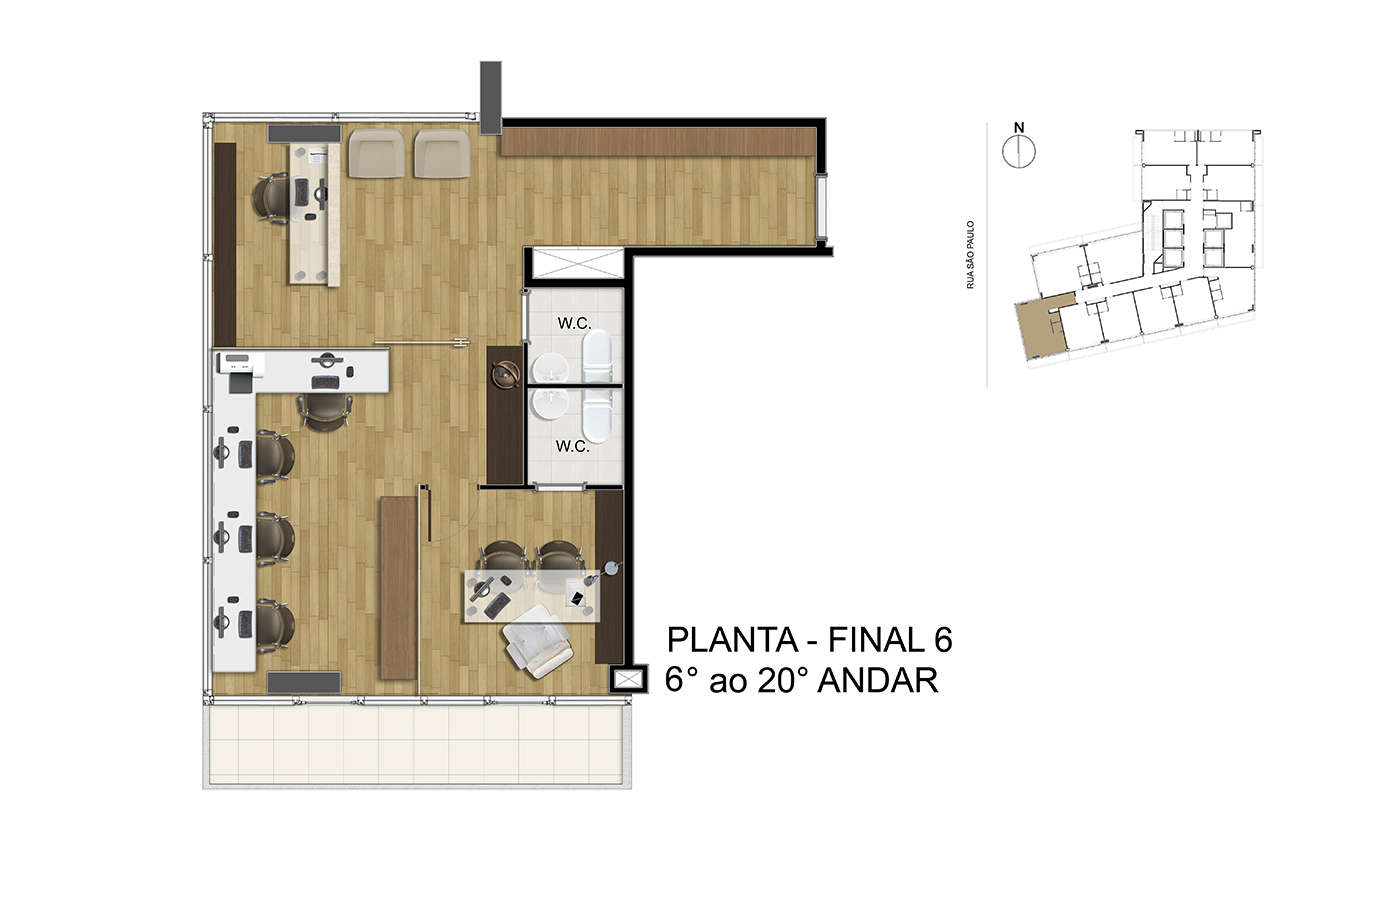 Planta - Final 6 - 6° ao 20° Andar Manhattan Office Santos